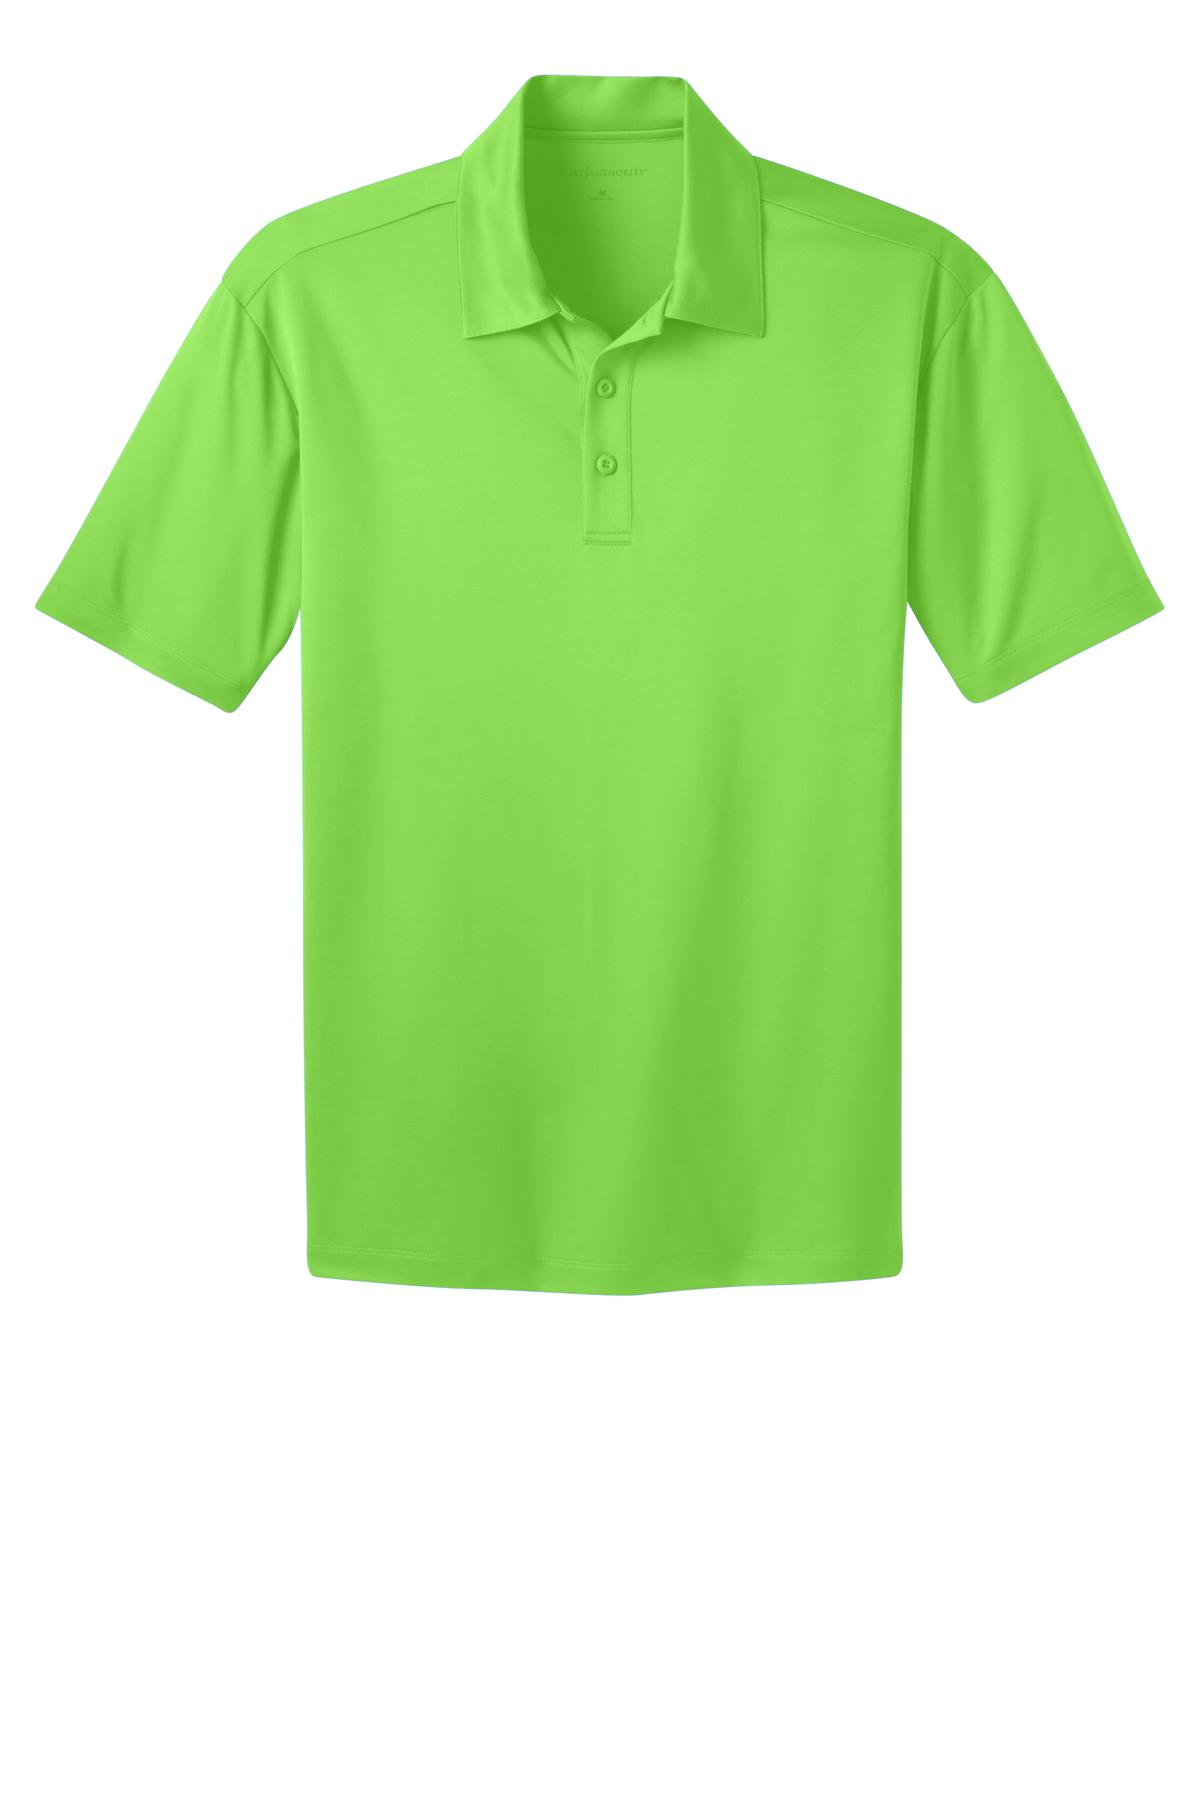 Costco 145 Product Costco Tall Silk Touch Performance Polo